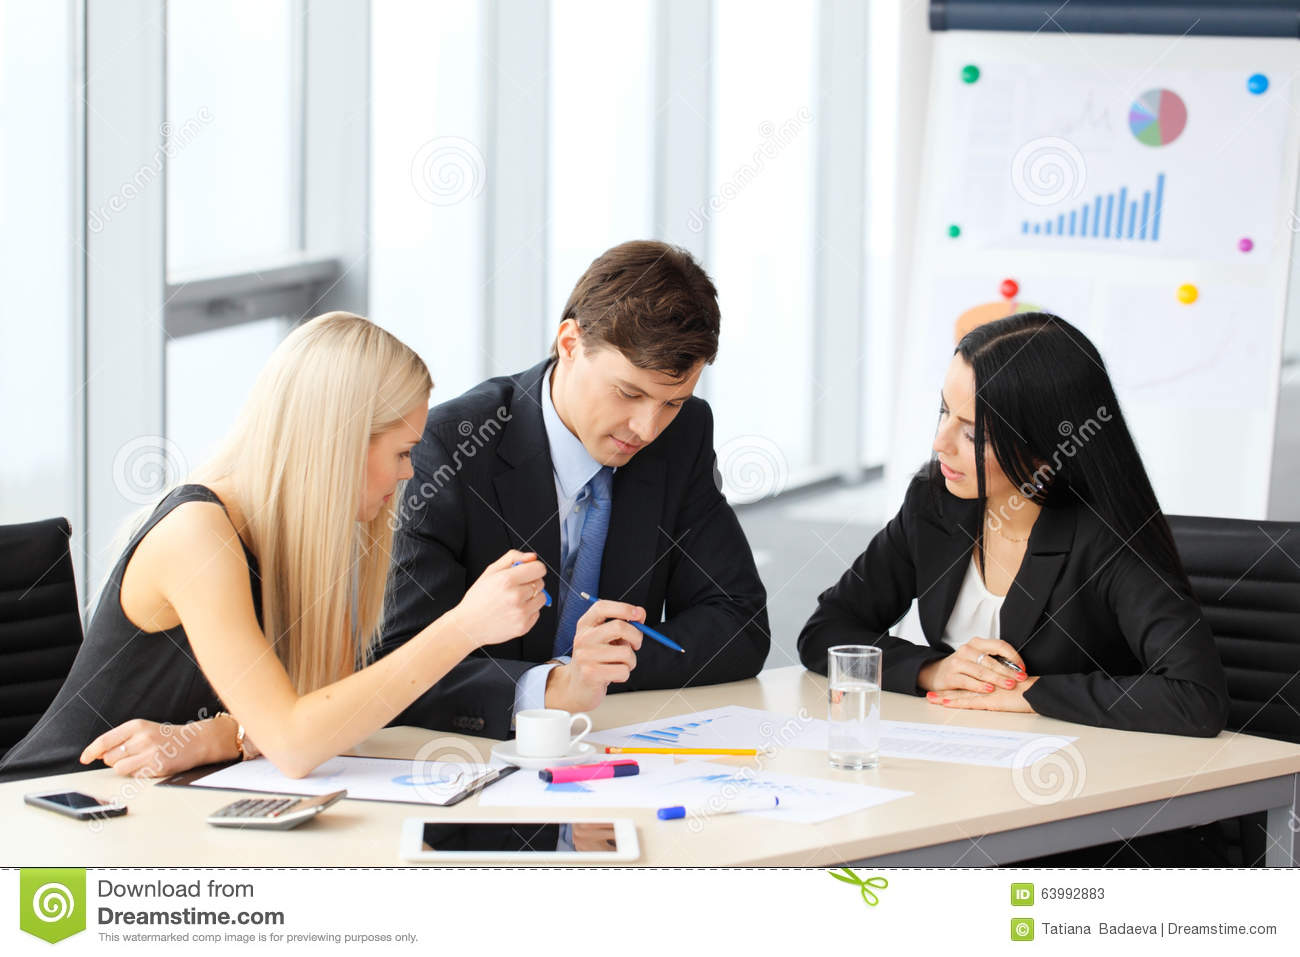 Teamwork Of Business People Stock Photo - Image: 63992883